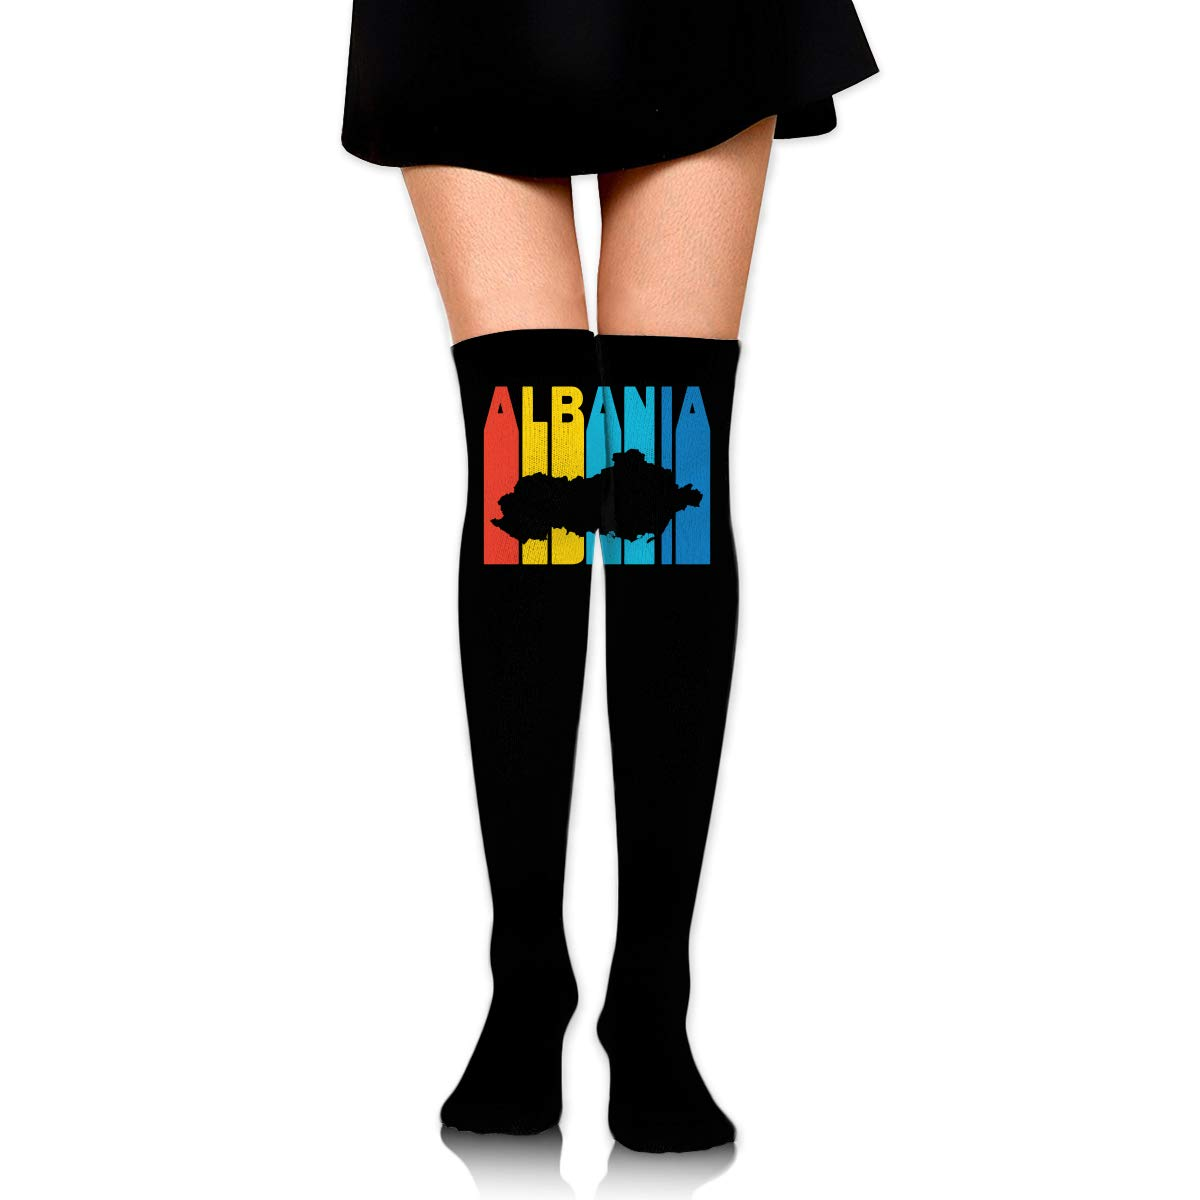 One Size Girls Womens Albanian Retro 1970s Style Over Knee Thigh High Stockings Fashion Socks